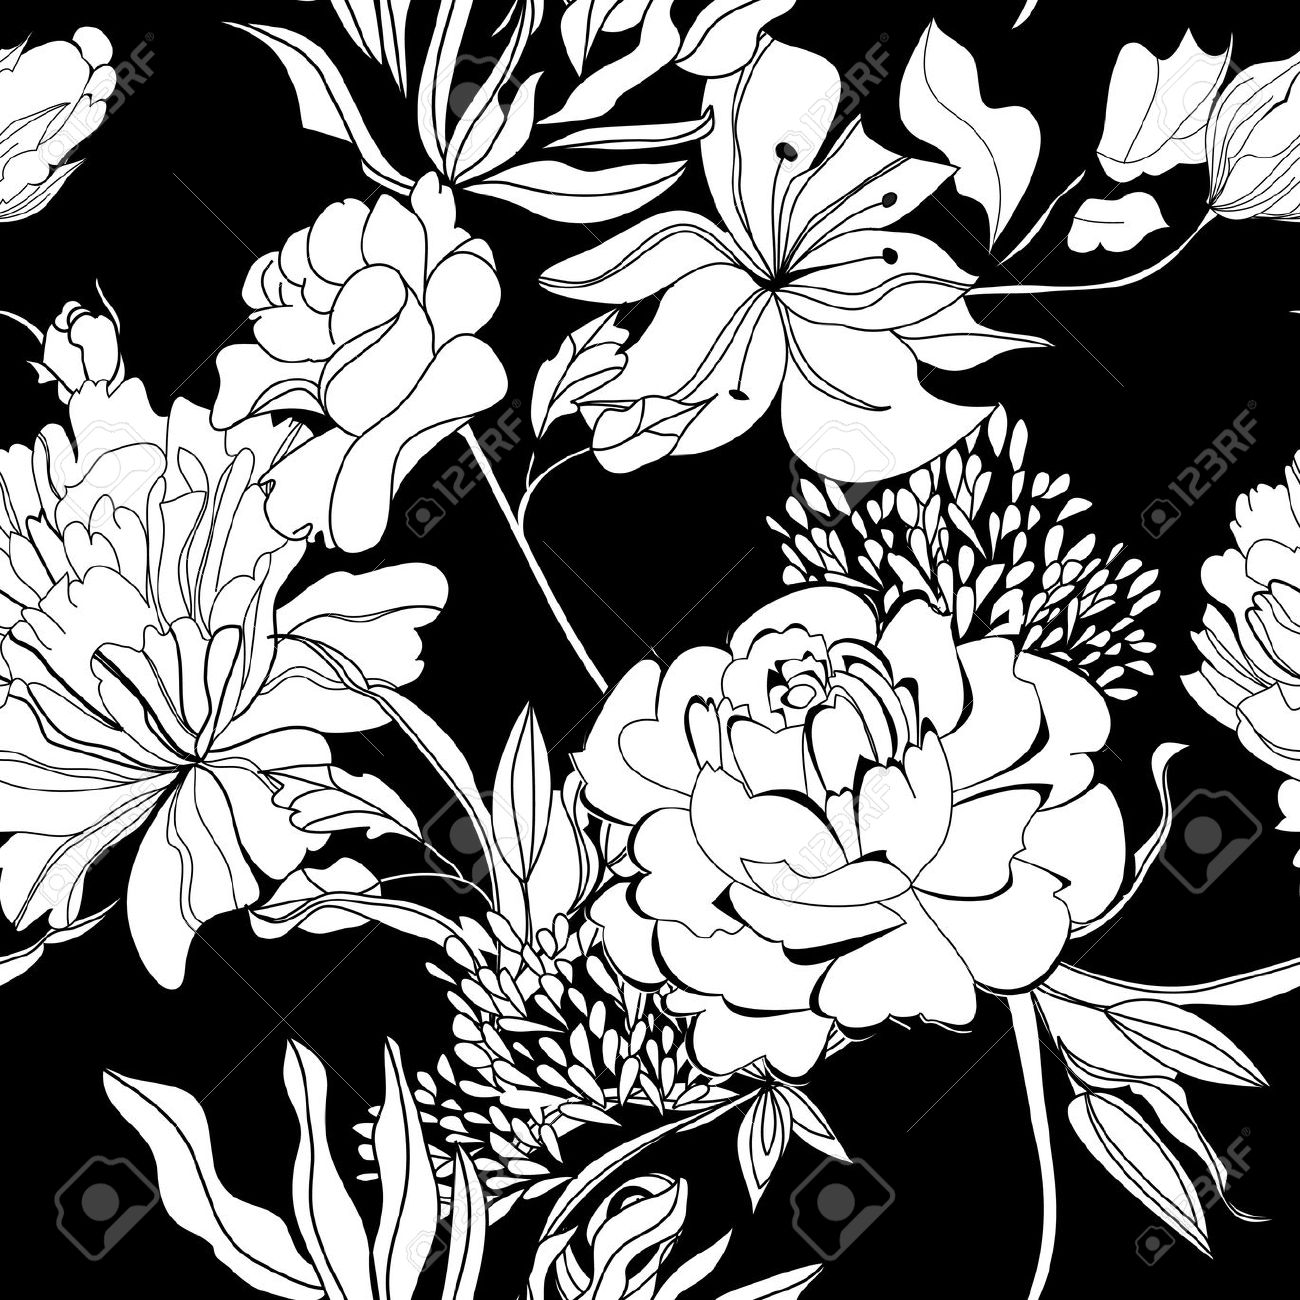 Line Drawing Wallpaper Uk : Black and white flower drawing at getdrawings free